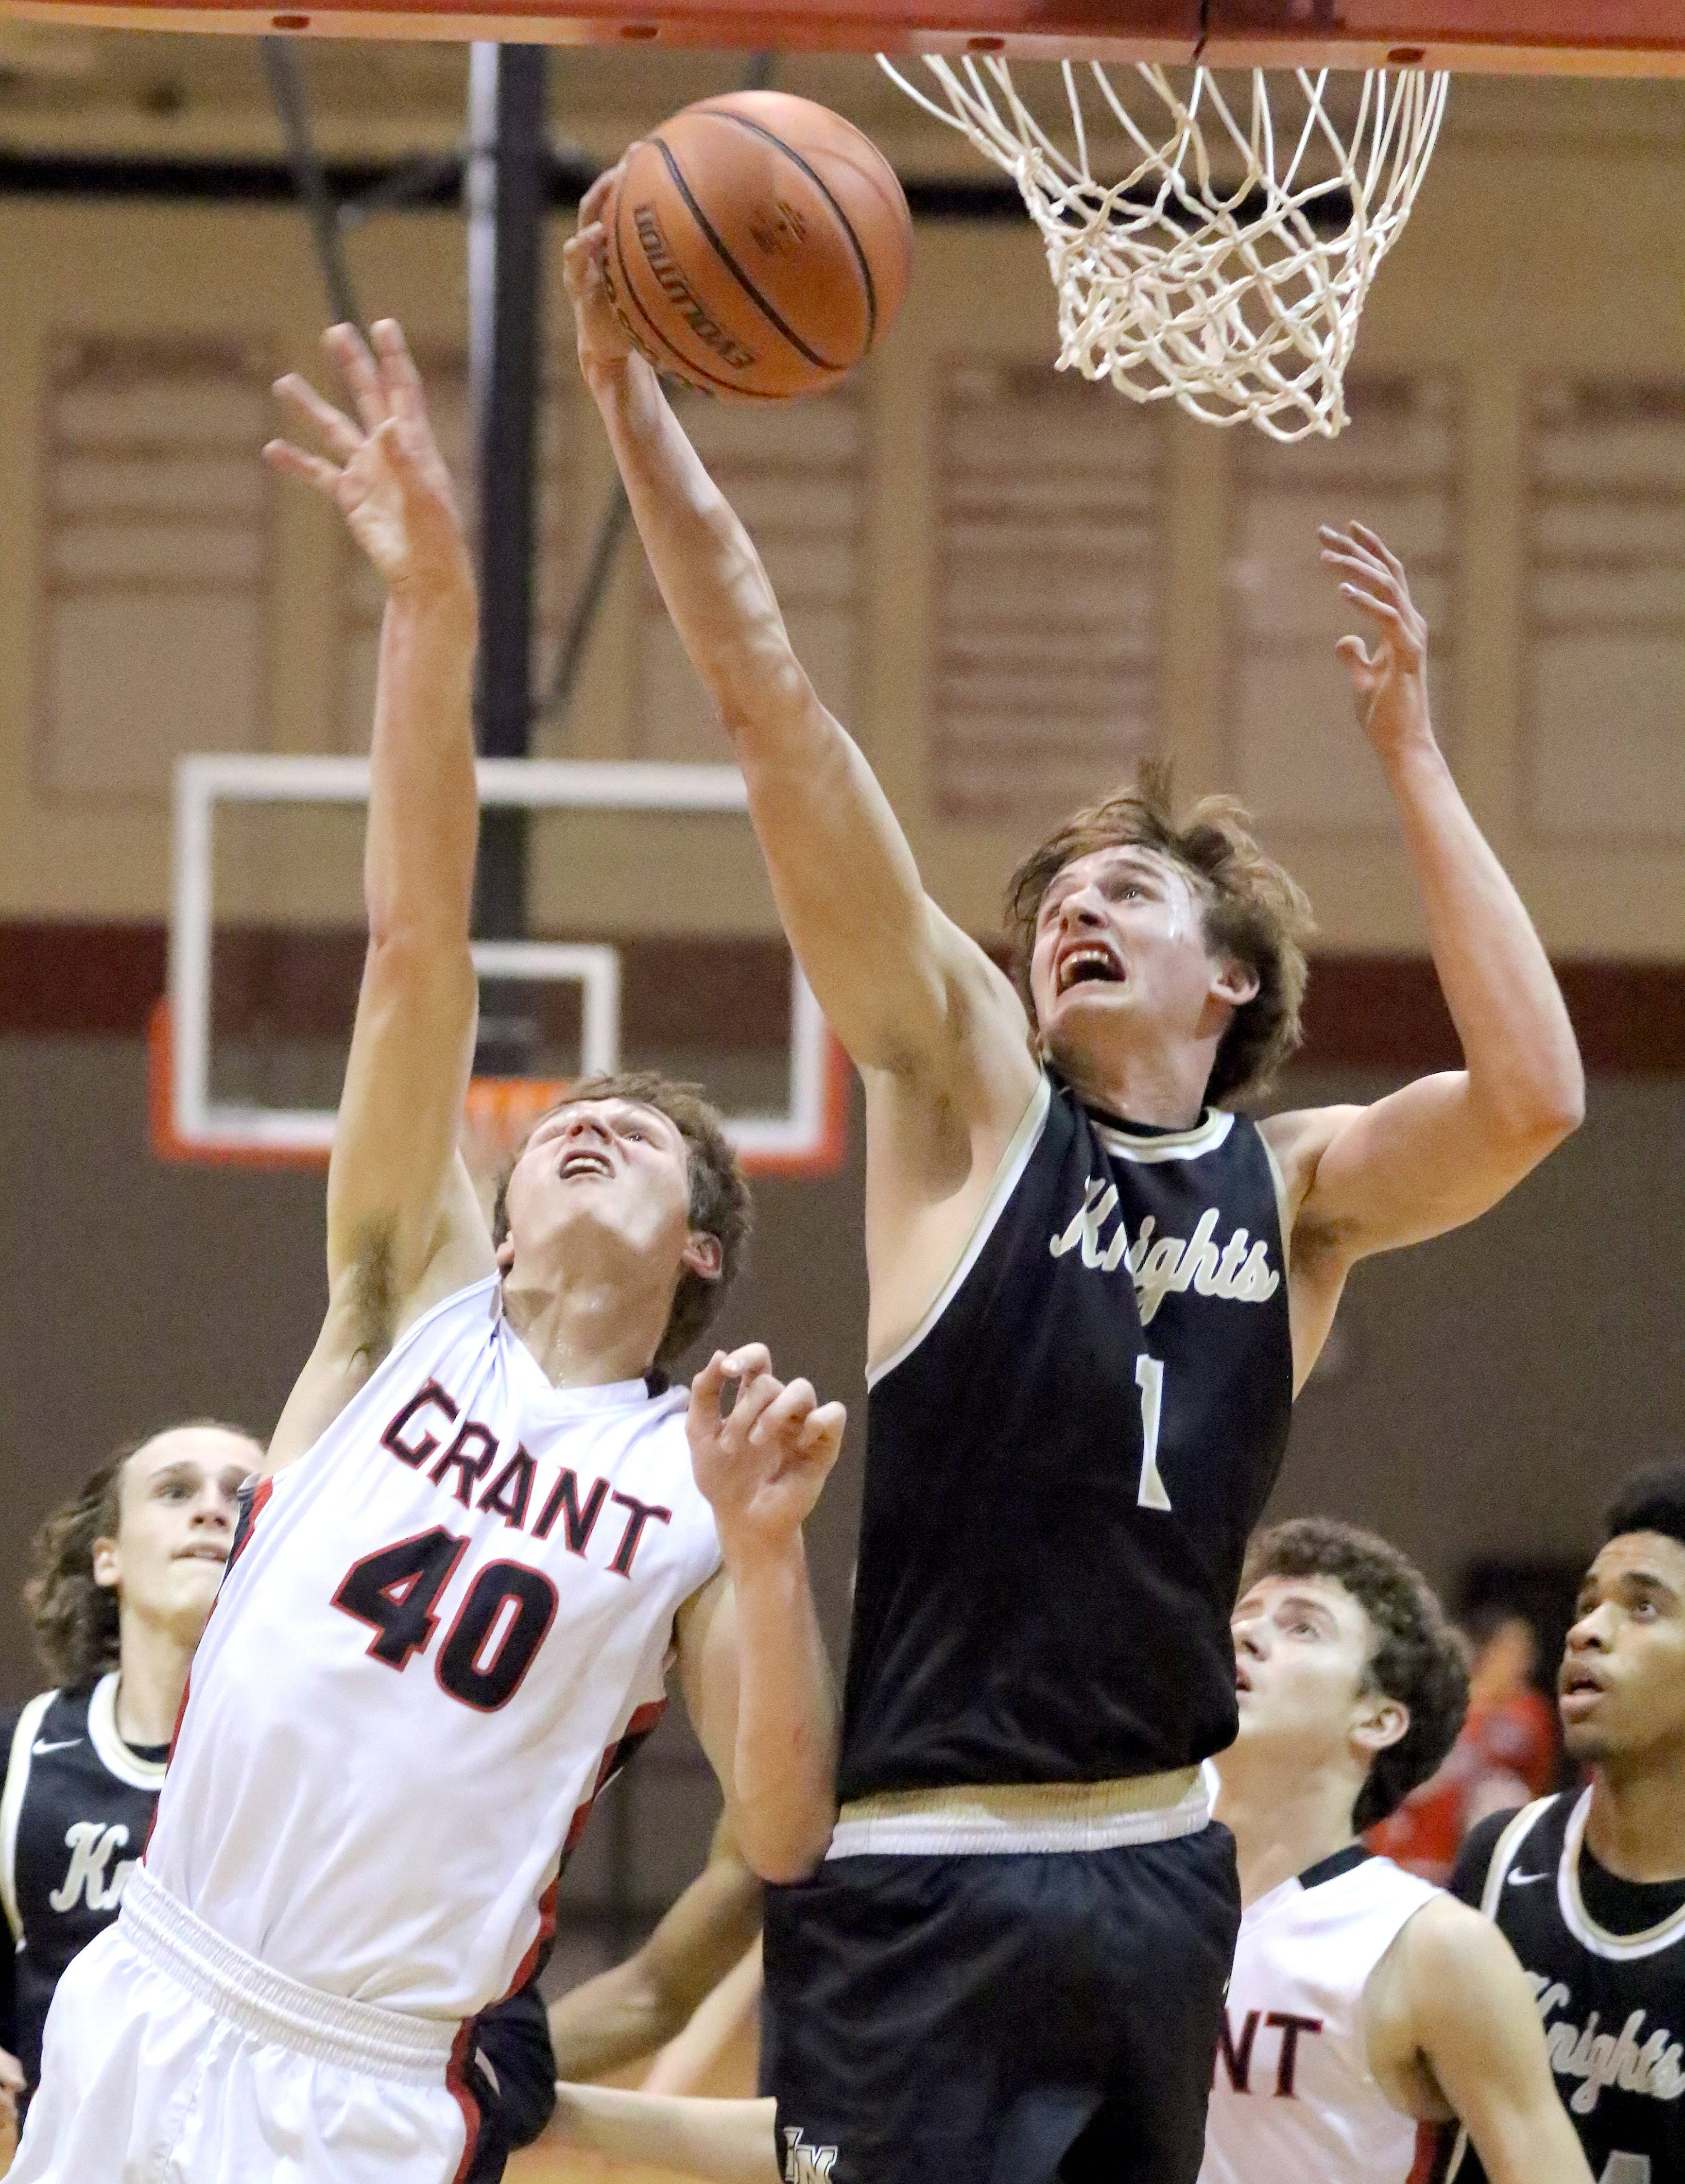 Grayslake North's James Connolly, right, pulls down a rebound over Grant's Andy Kaye on Tuesday at Grant.